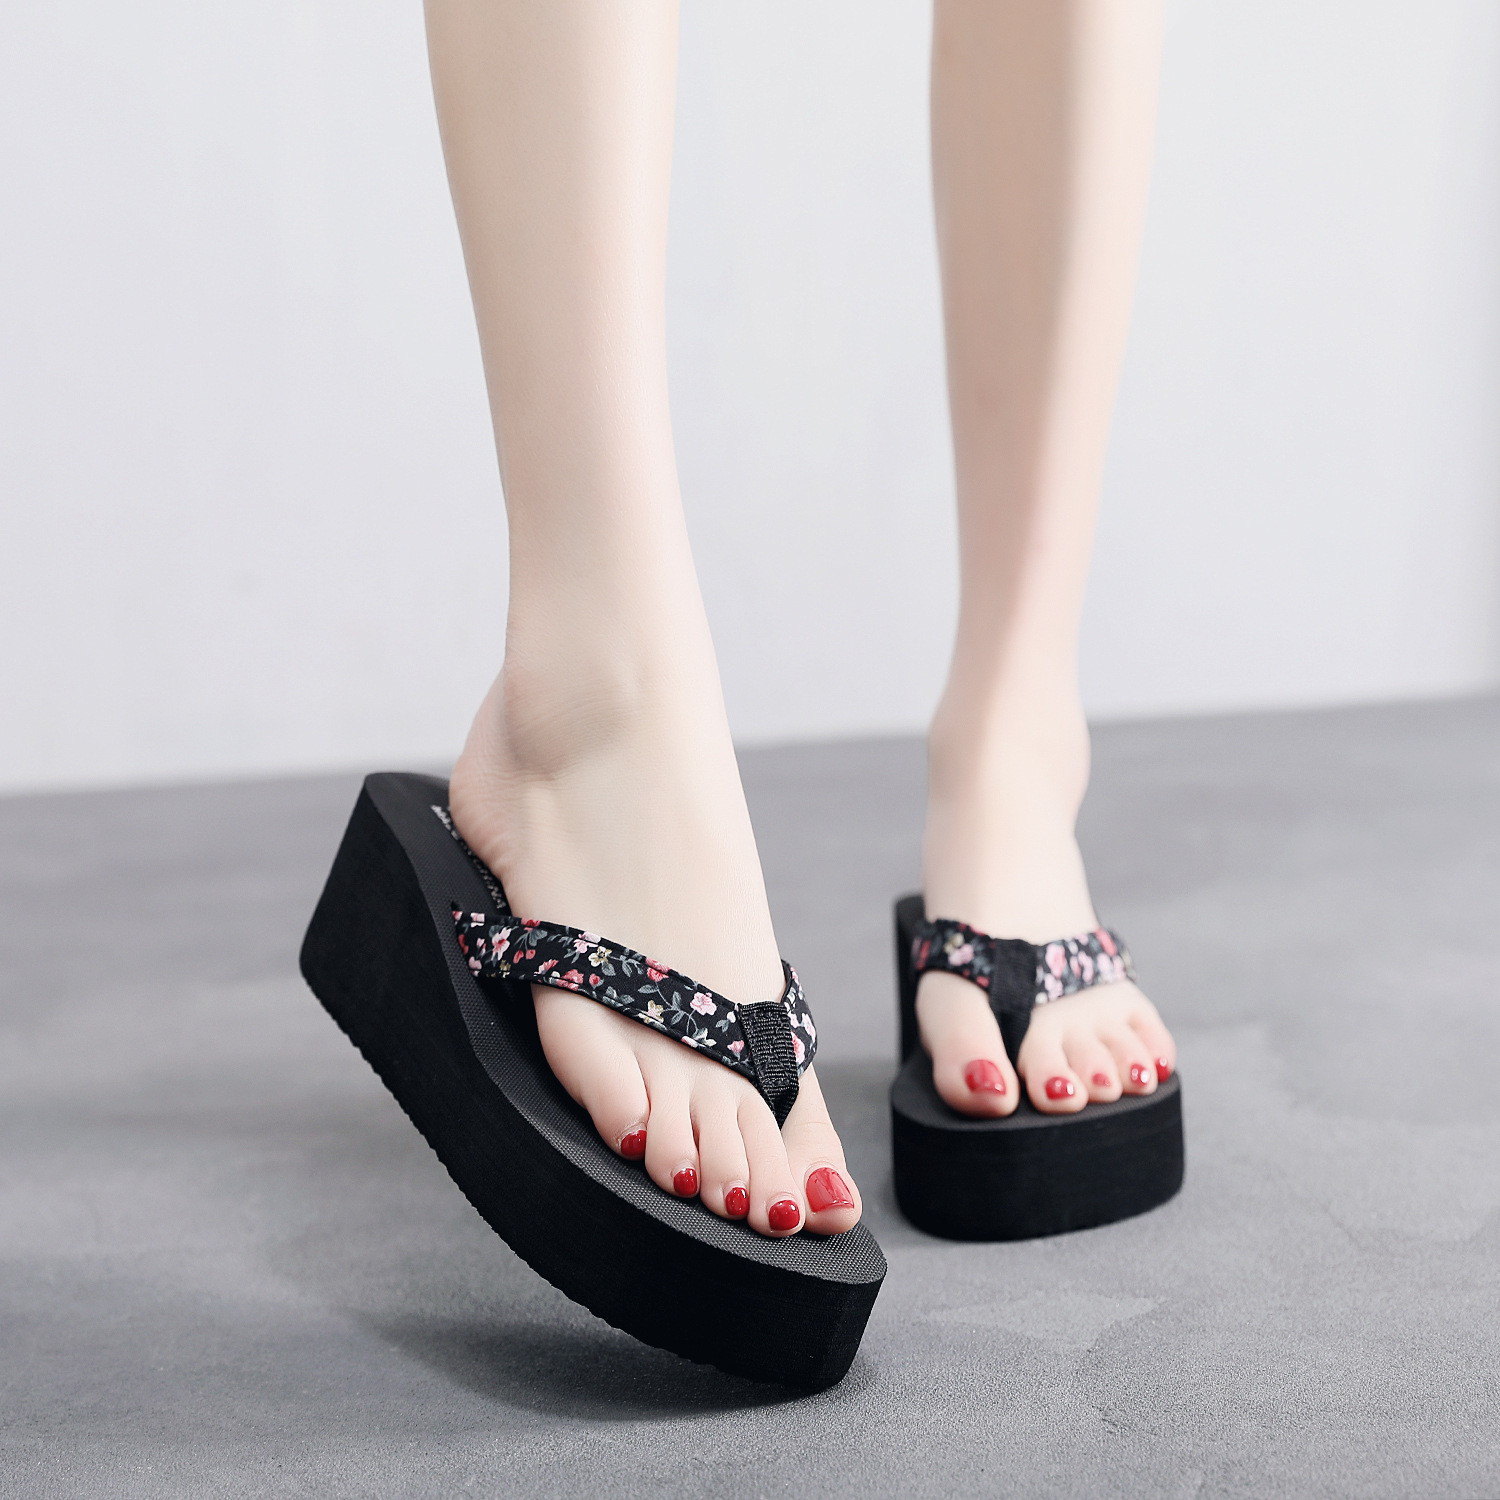 2019 new fund belts spend summertime slipper to prevent the clip end slippery Gao Genhou the foot is